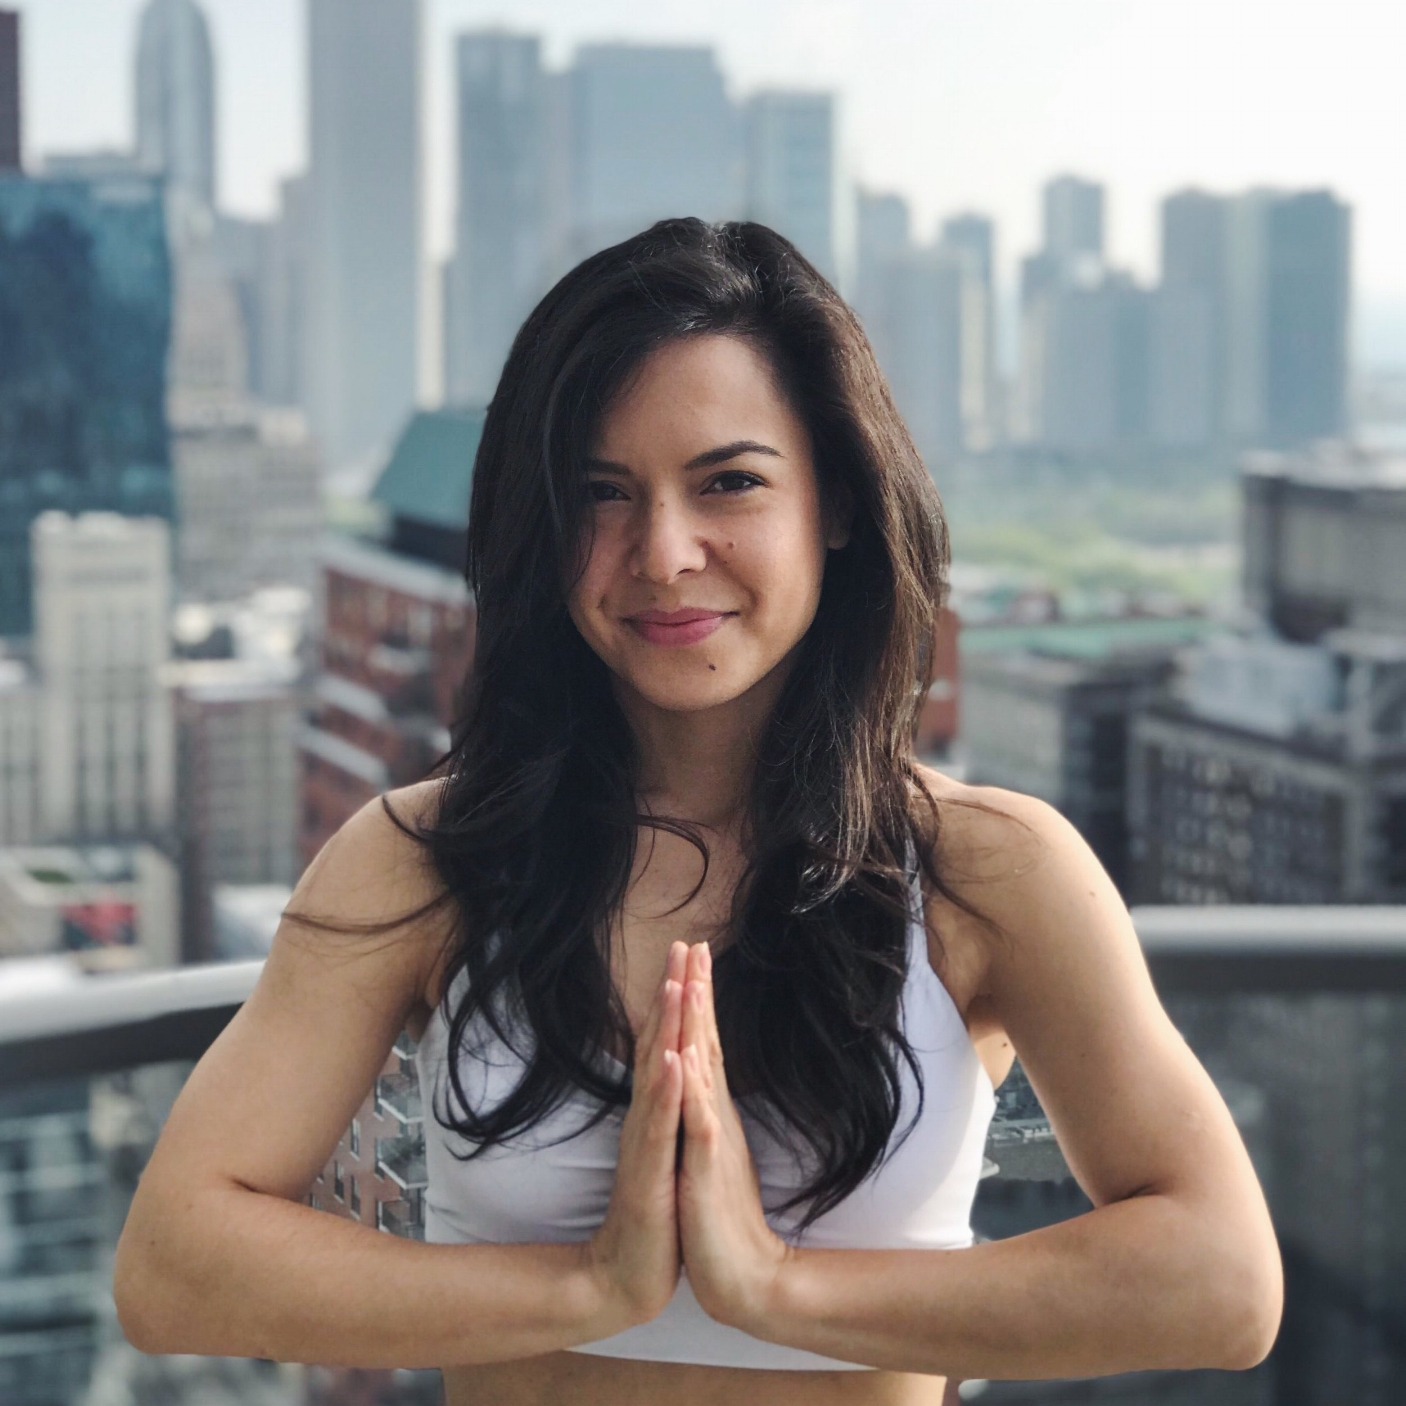 Angela Corpus - Angela is a certified 200 hr yoga teacher with a passion for exploring the mind-body connection of yoga. Like many, she initially came to her mat for the workout, but what she discovered was the profound power that a deep breath can bring to a moment. One of her go-to mantras is